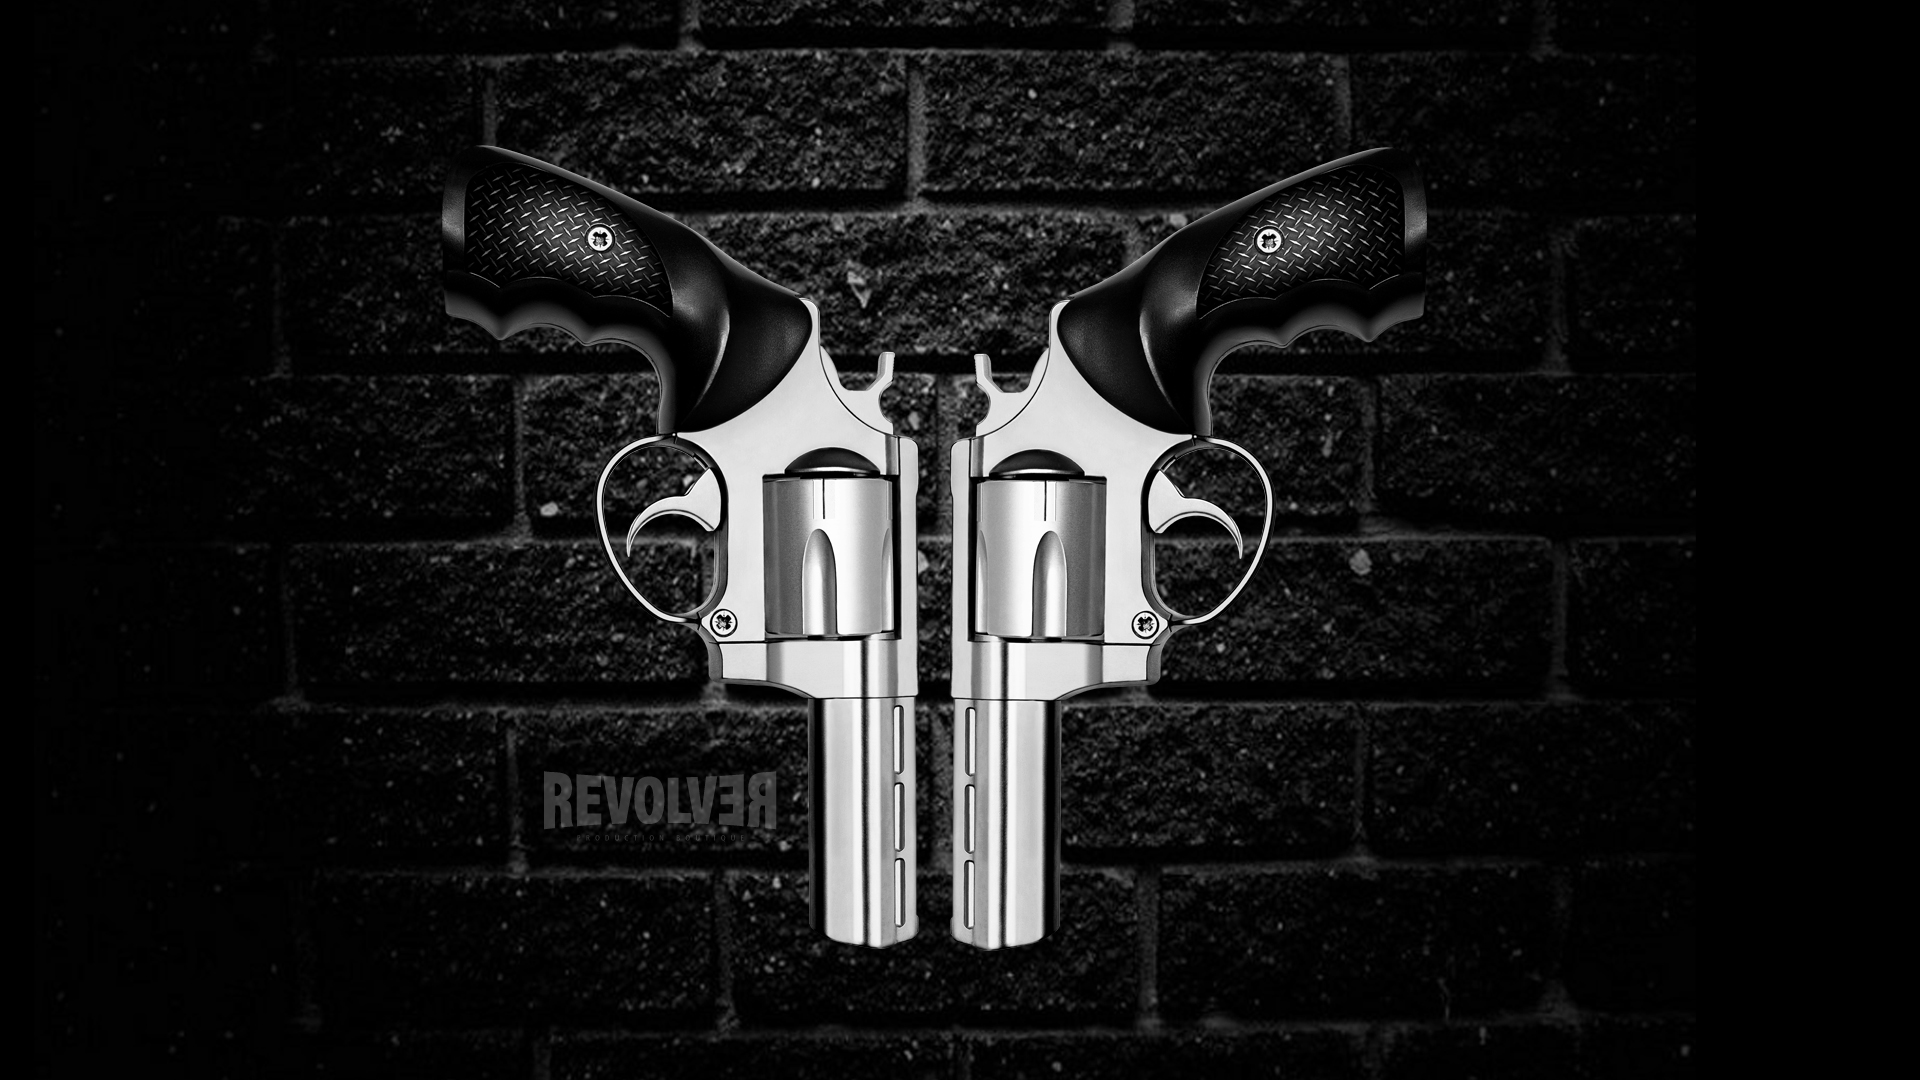 Revolver HD Widescreen Wallpapers - XQF-100% Quality HD Pictures